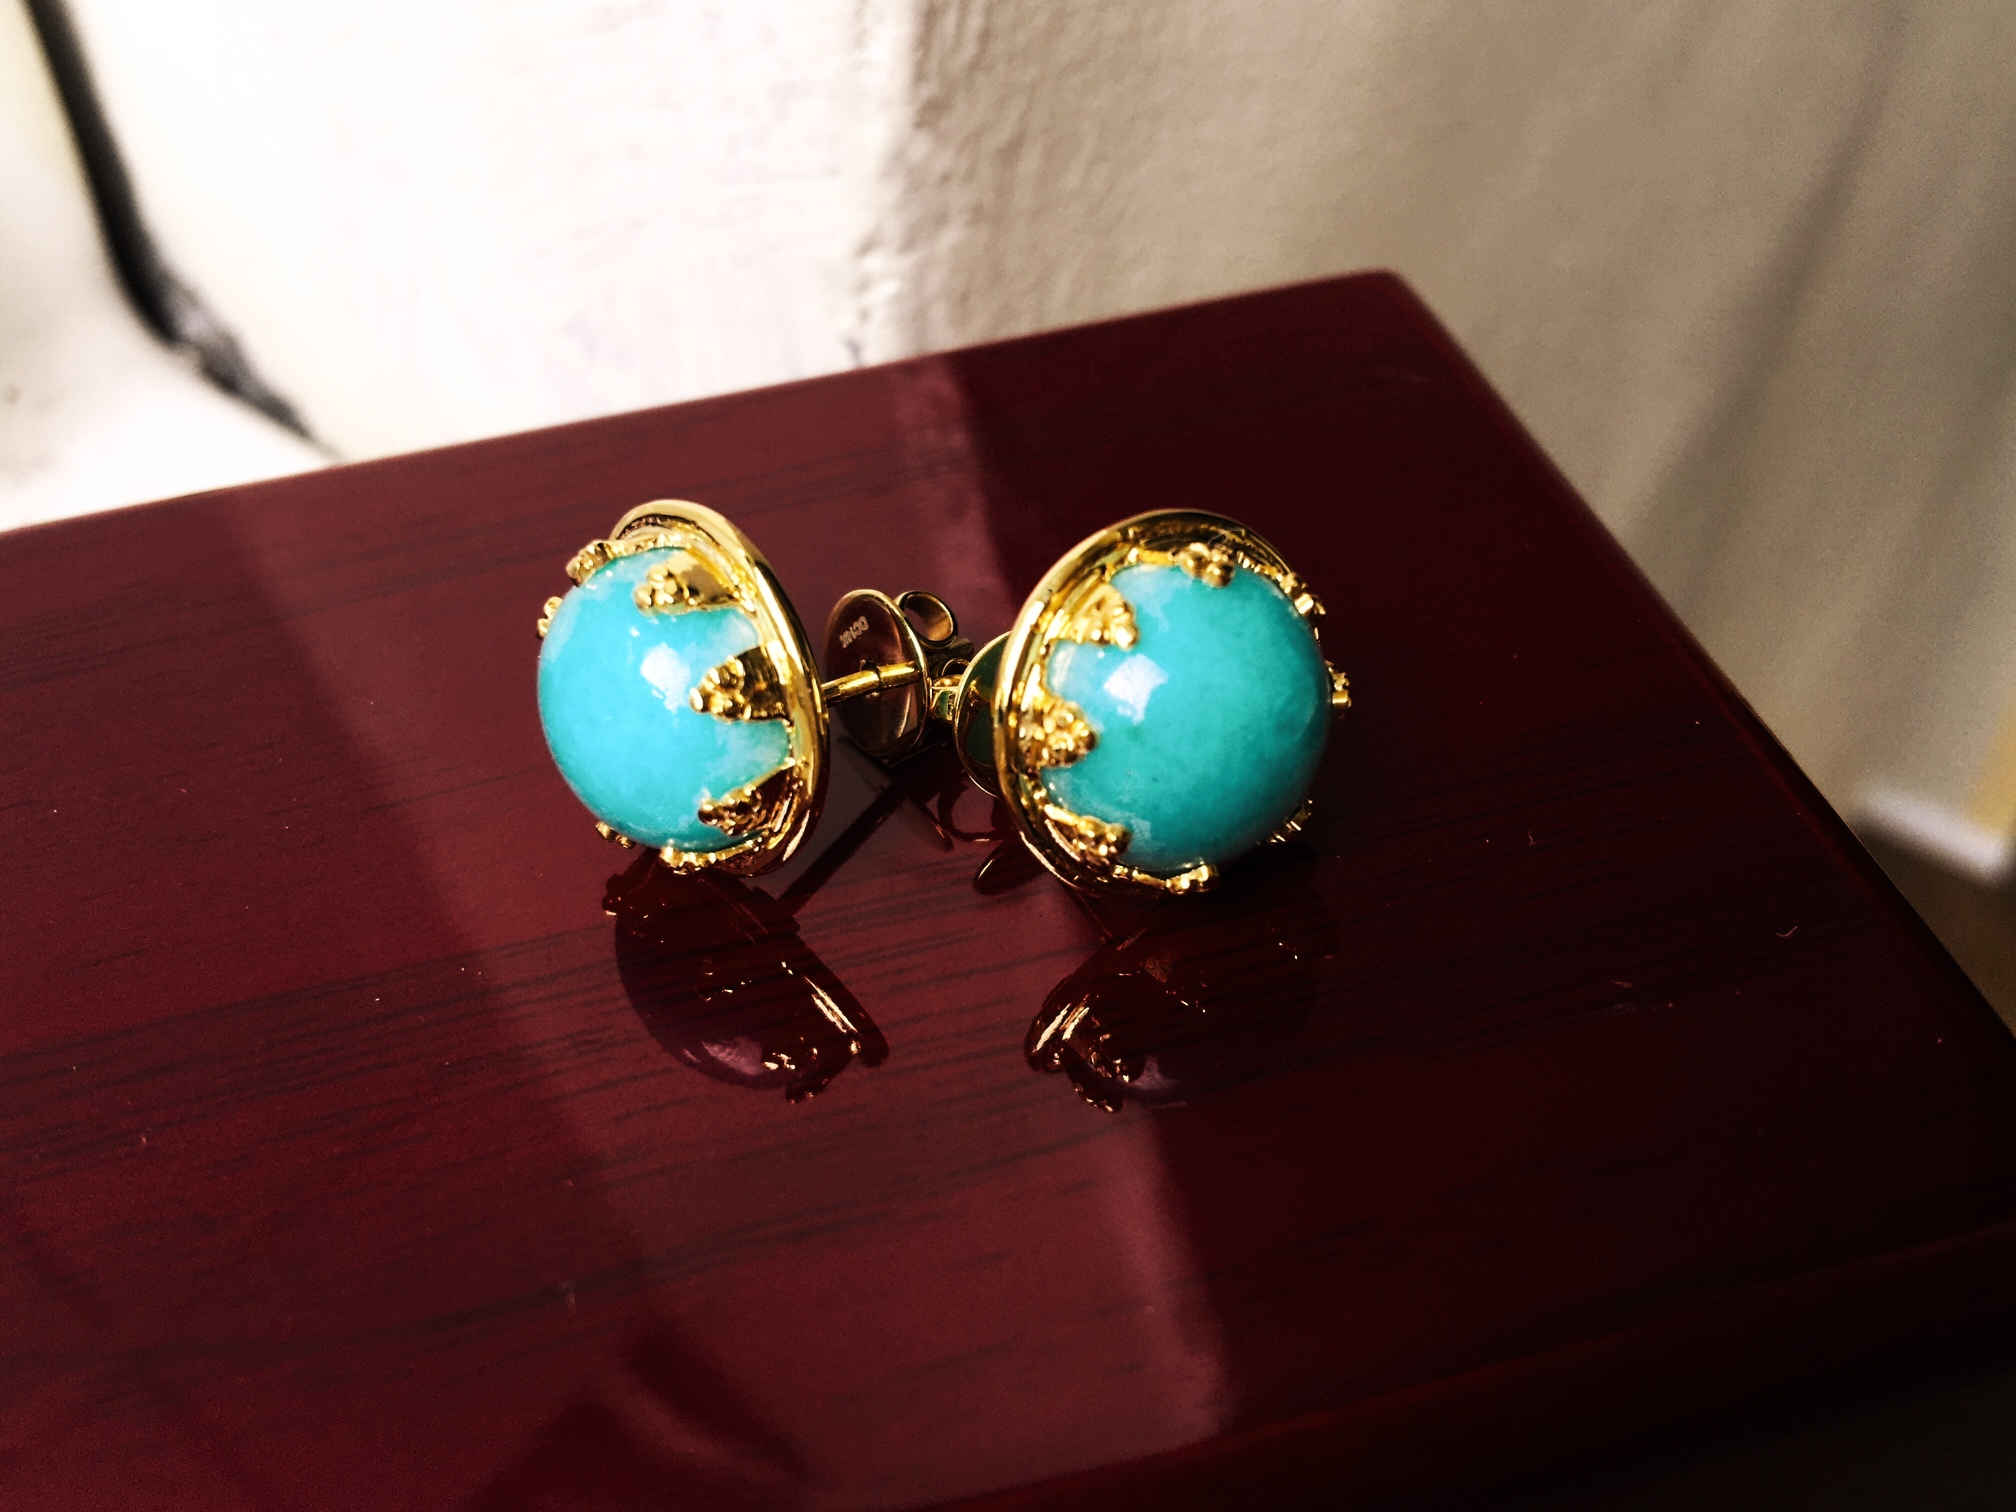 Yellowgold Torquise Stud Earrings